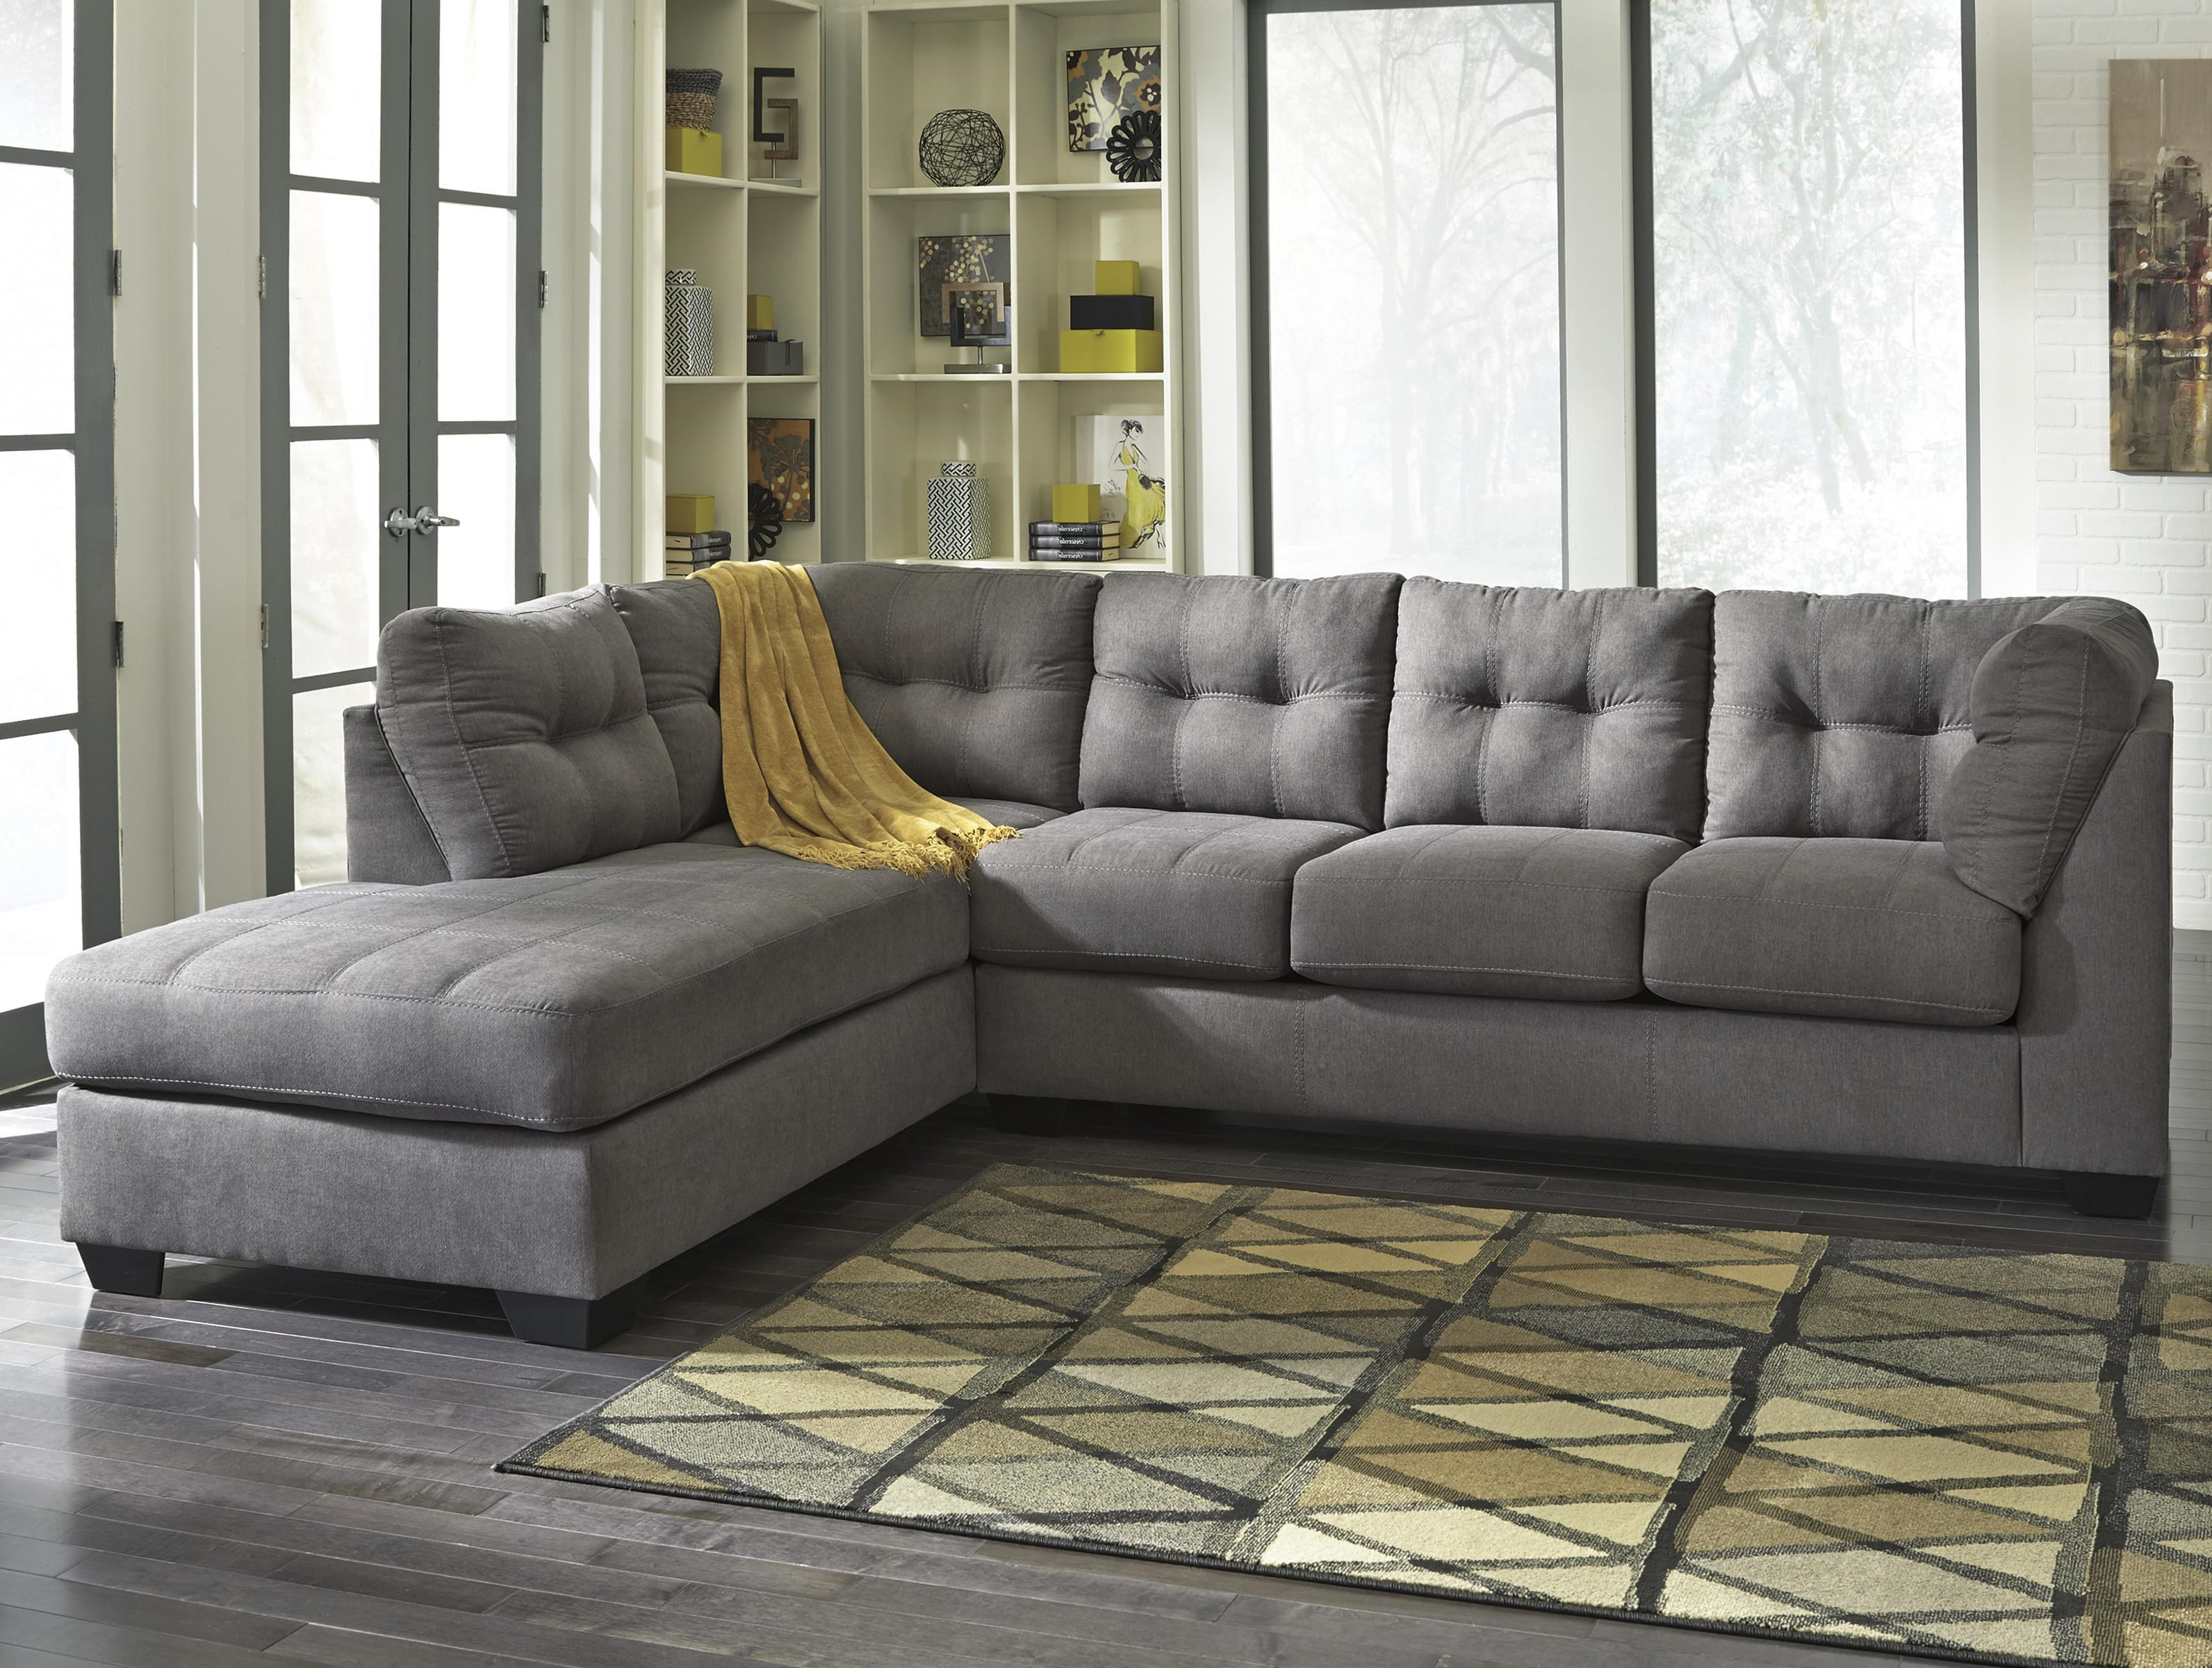 Benchcraft By Ashley Maier   Charcoal2 Piece Sectional W/ Sleeper U0026 Chaise  ...